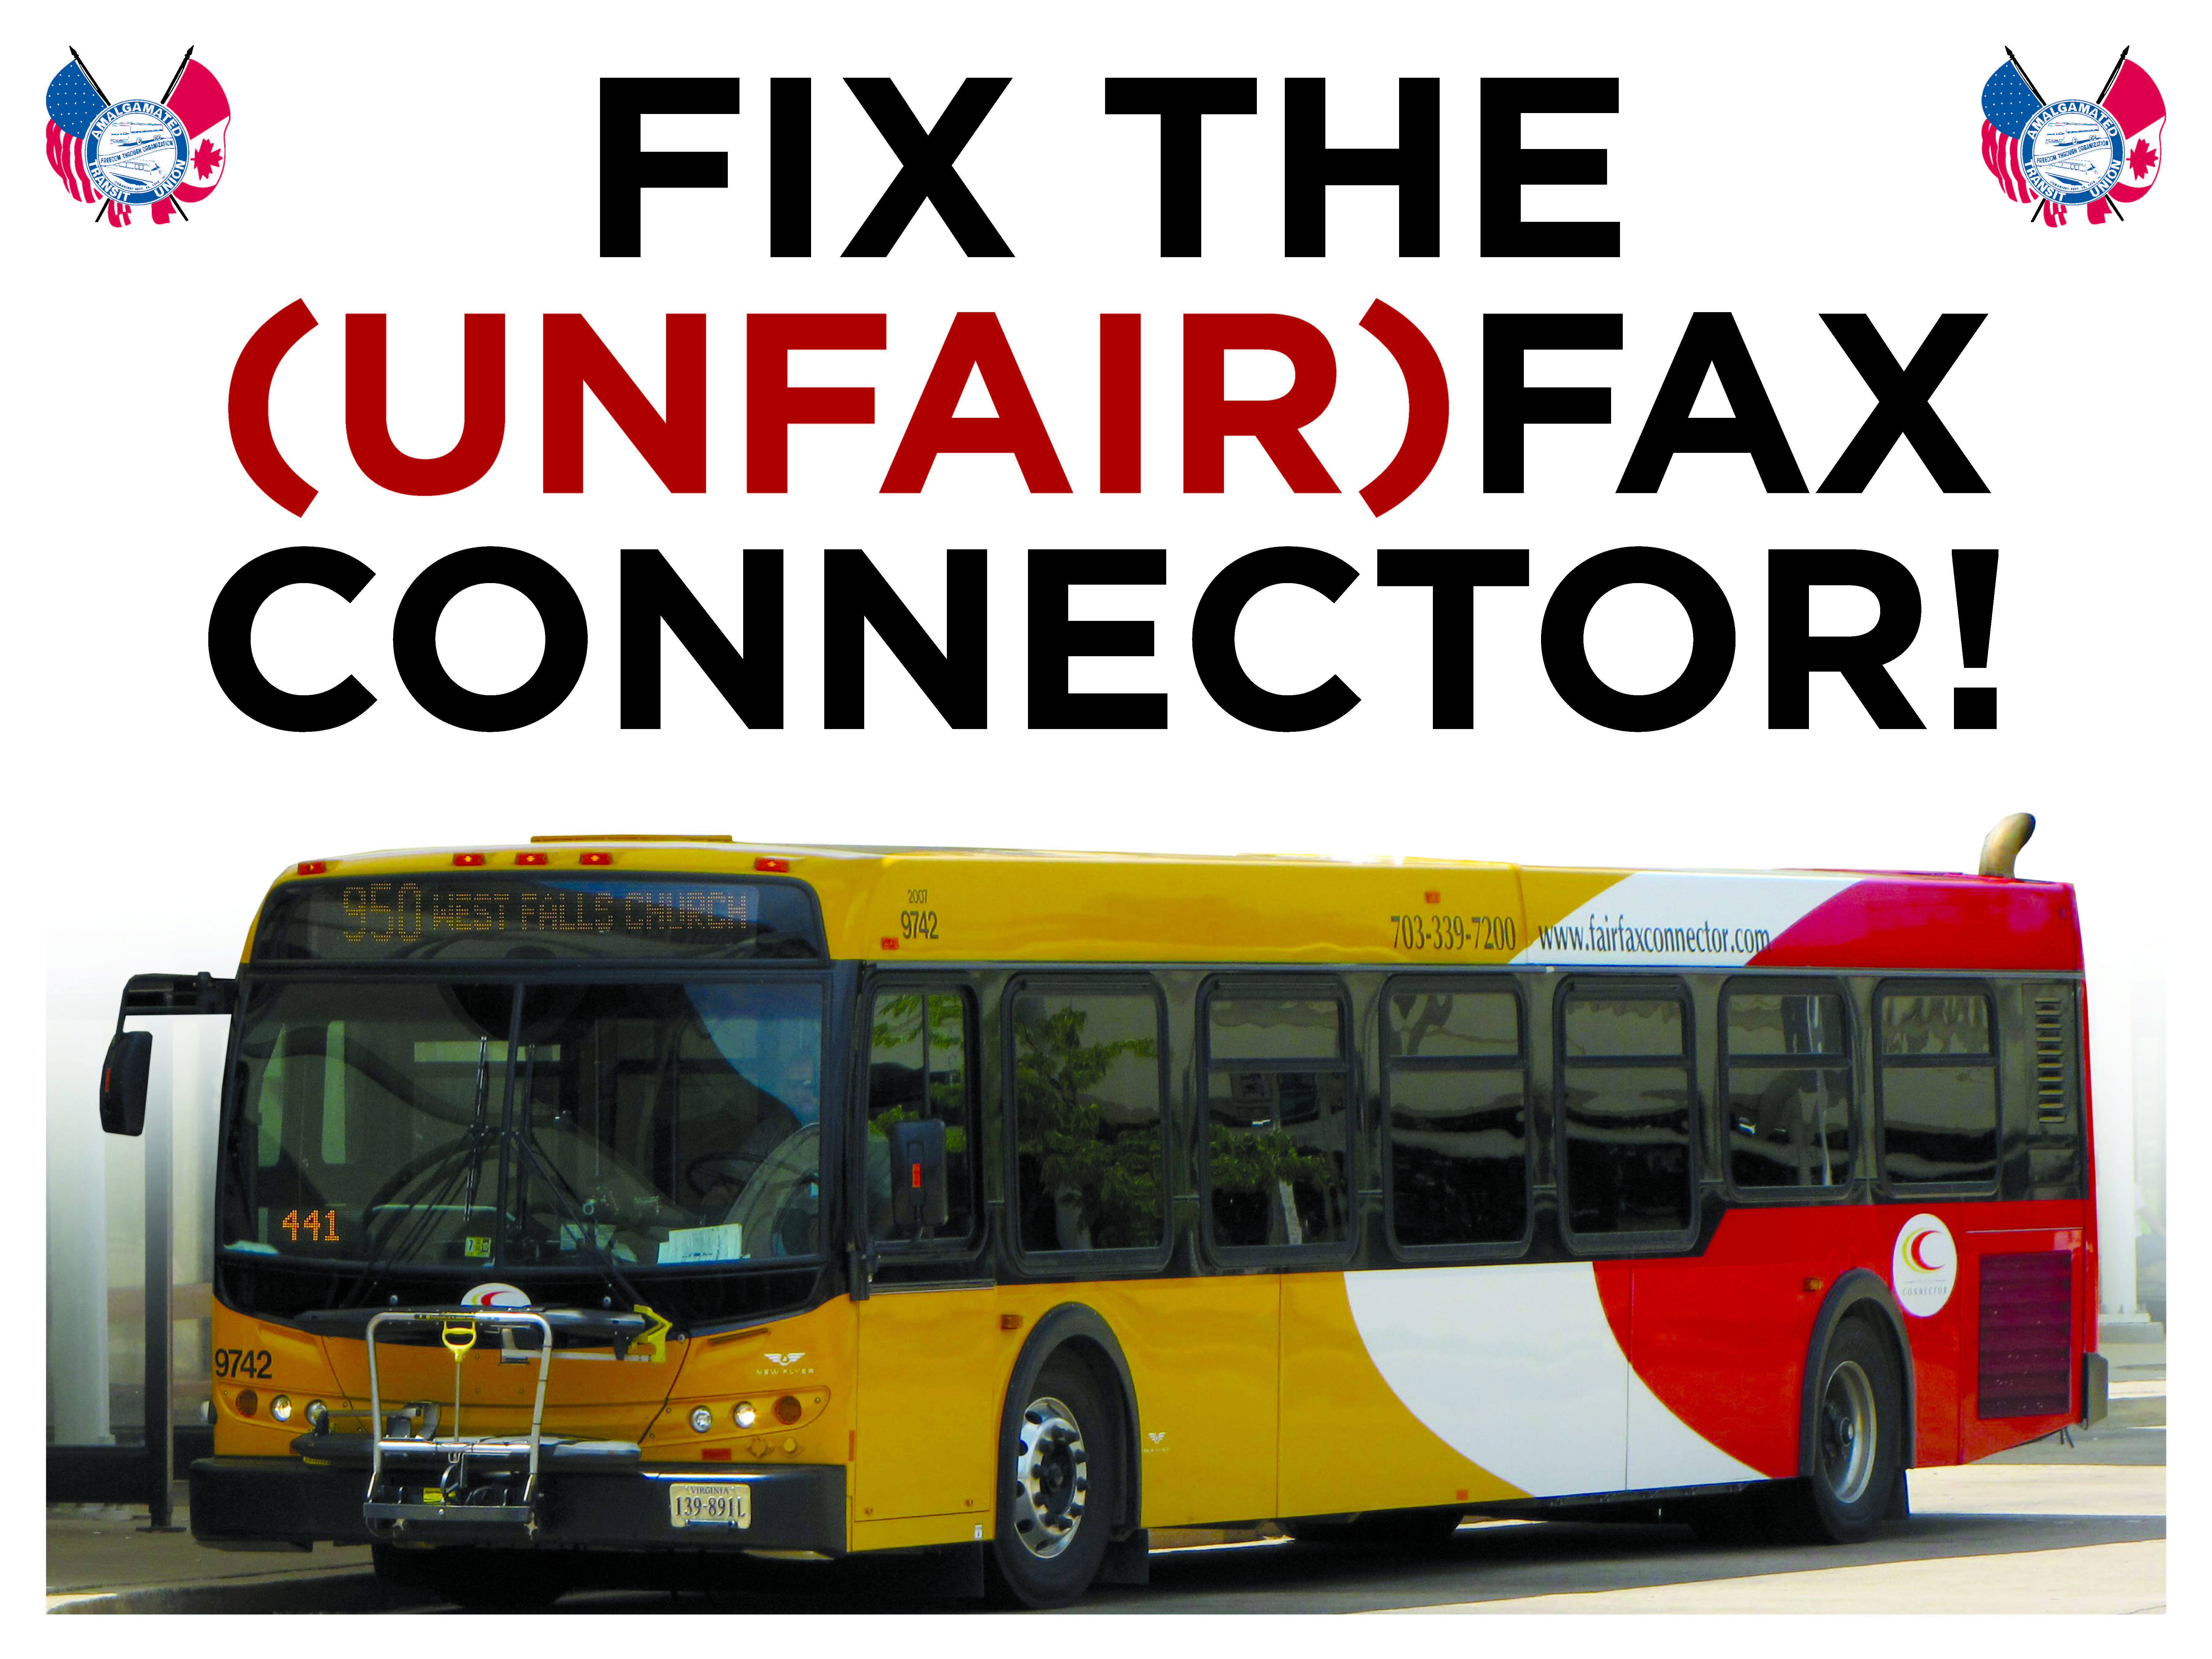 fix the (unfair)fax connector